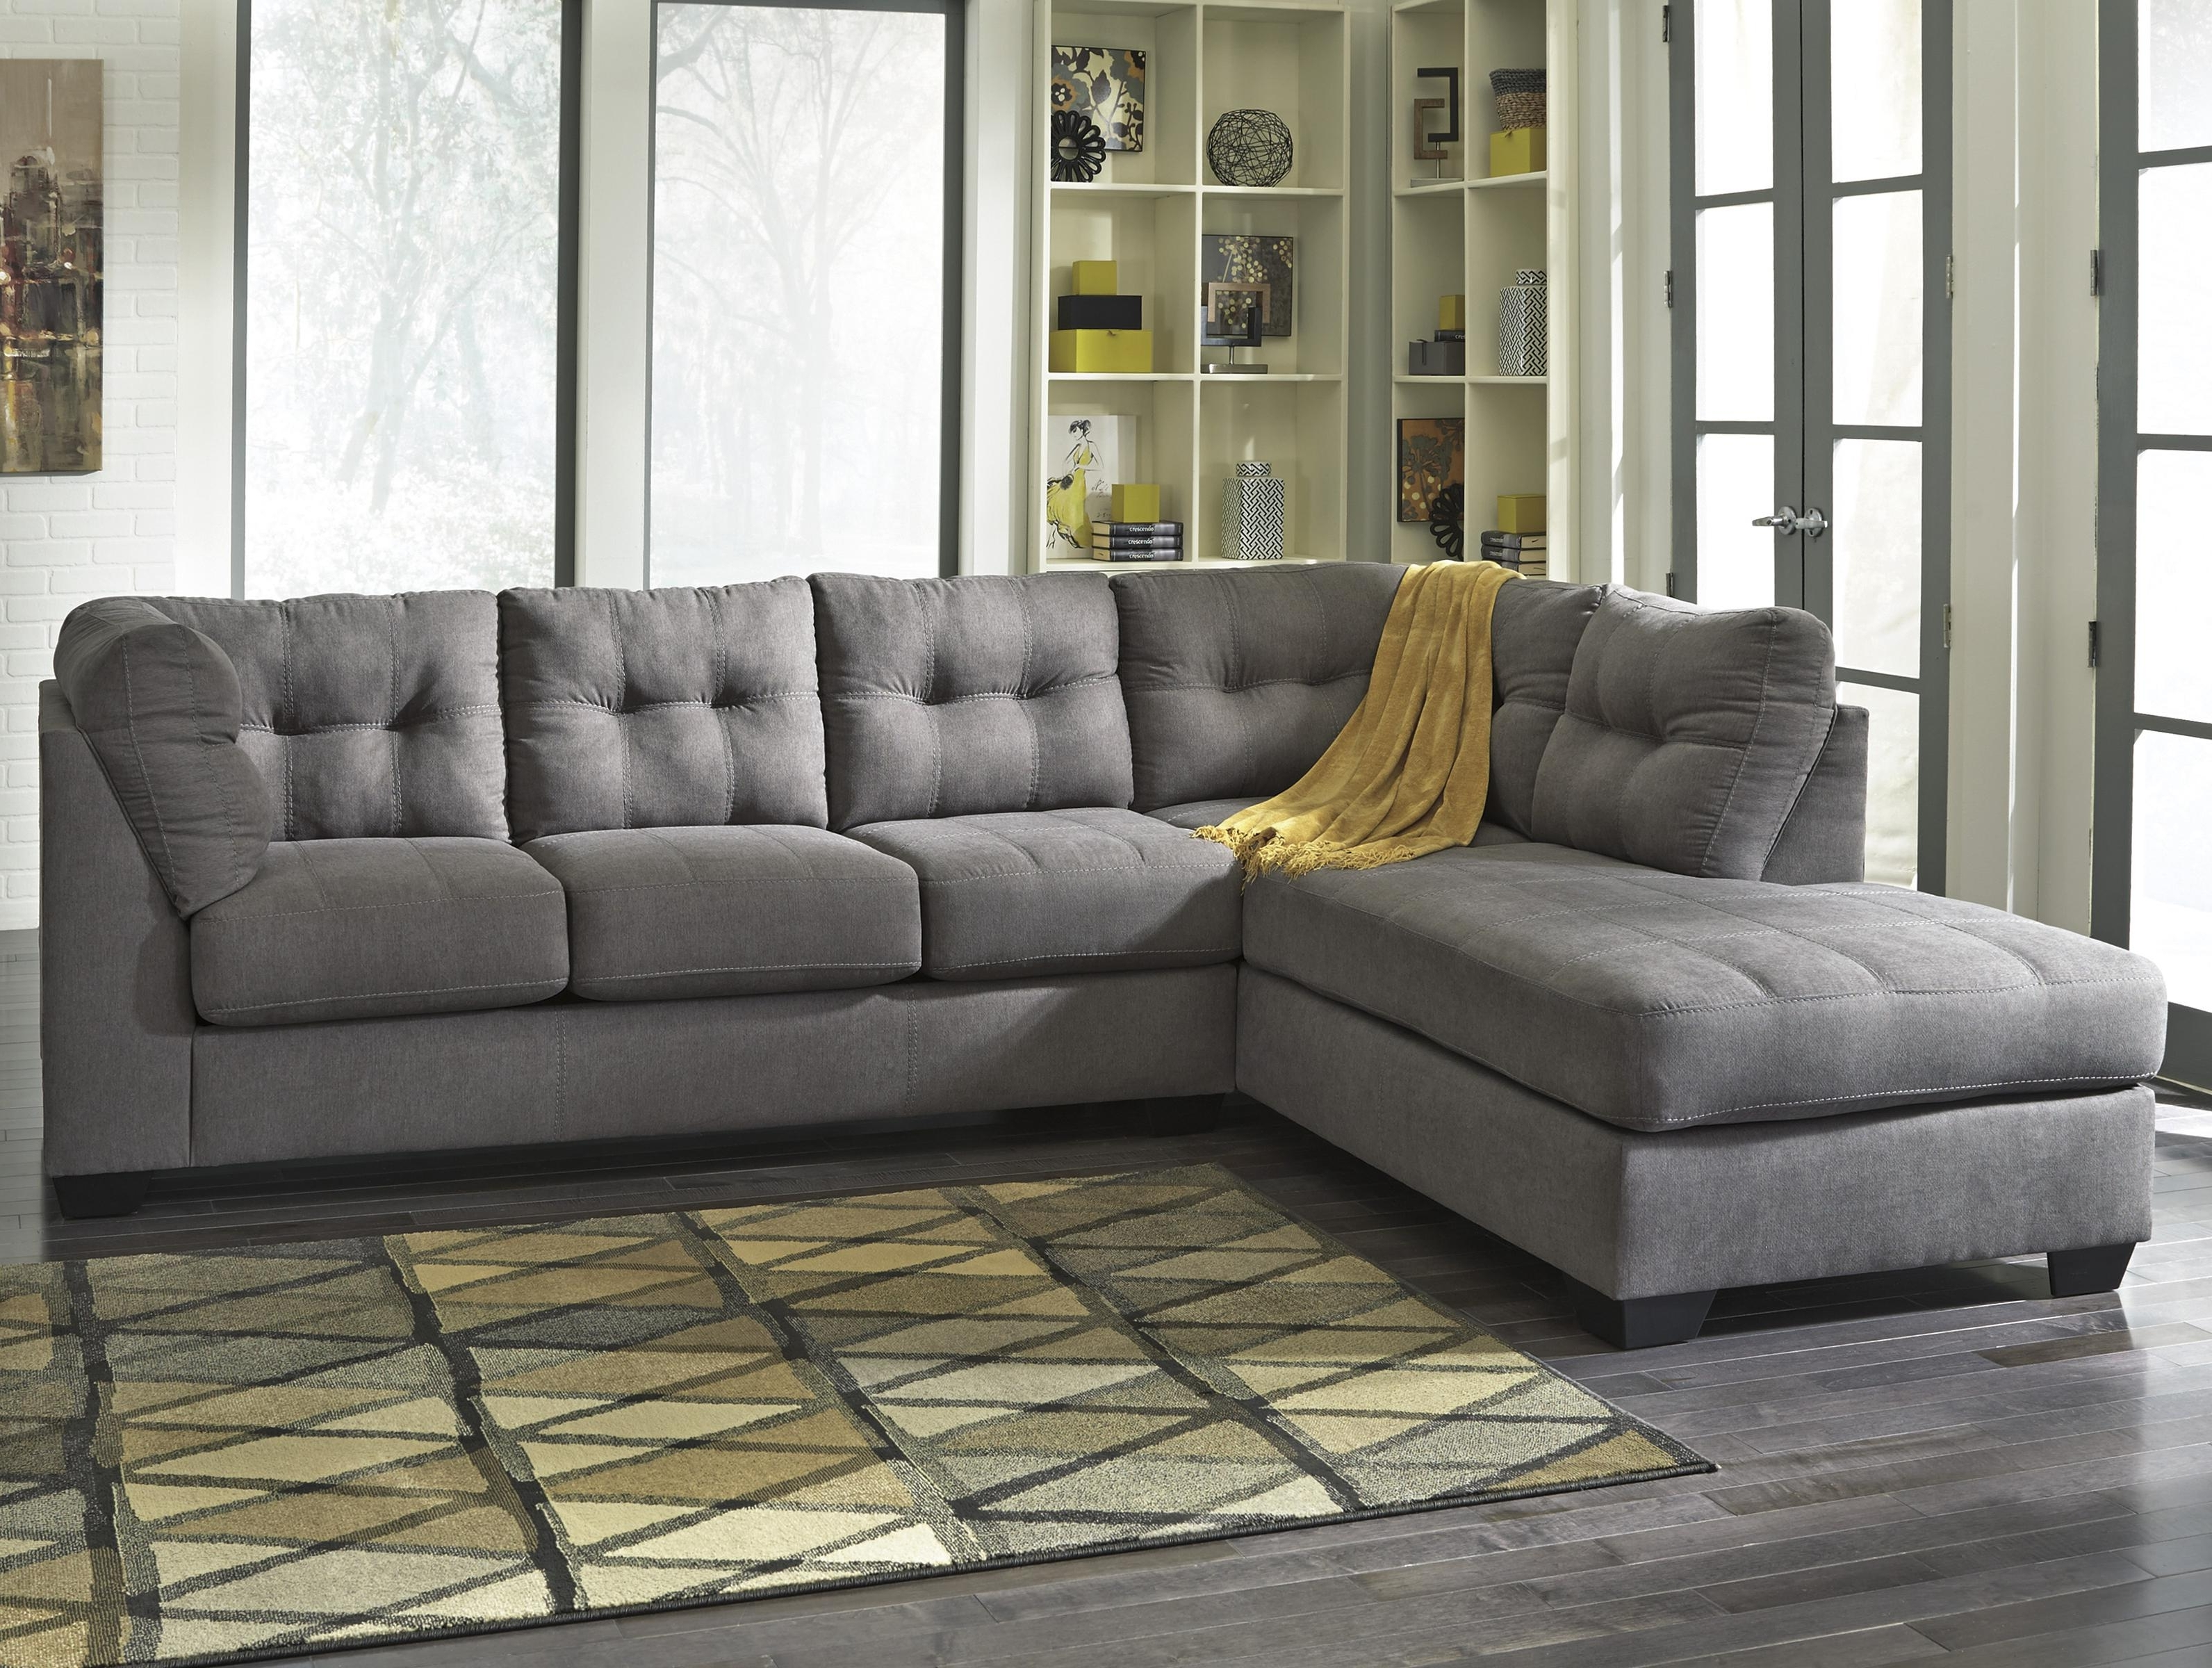 Benchcraft Maier – Charcoal 2 Piece Sectional W/ Sleeper Sofa Inside Current Ashley Furniture Sofa Chaises (View 4 of 15)